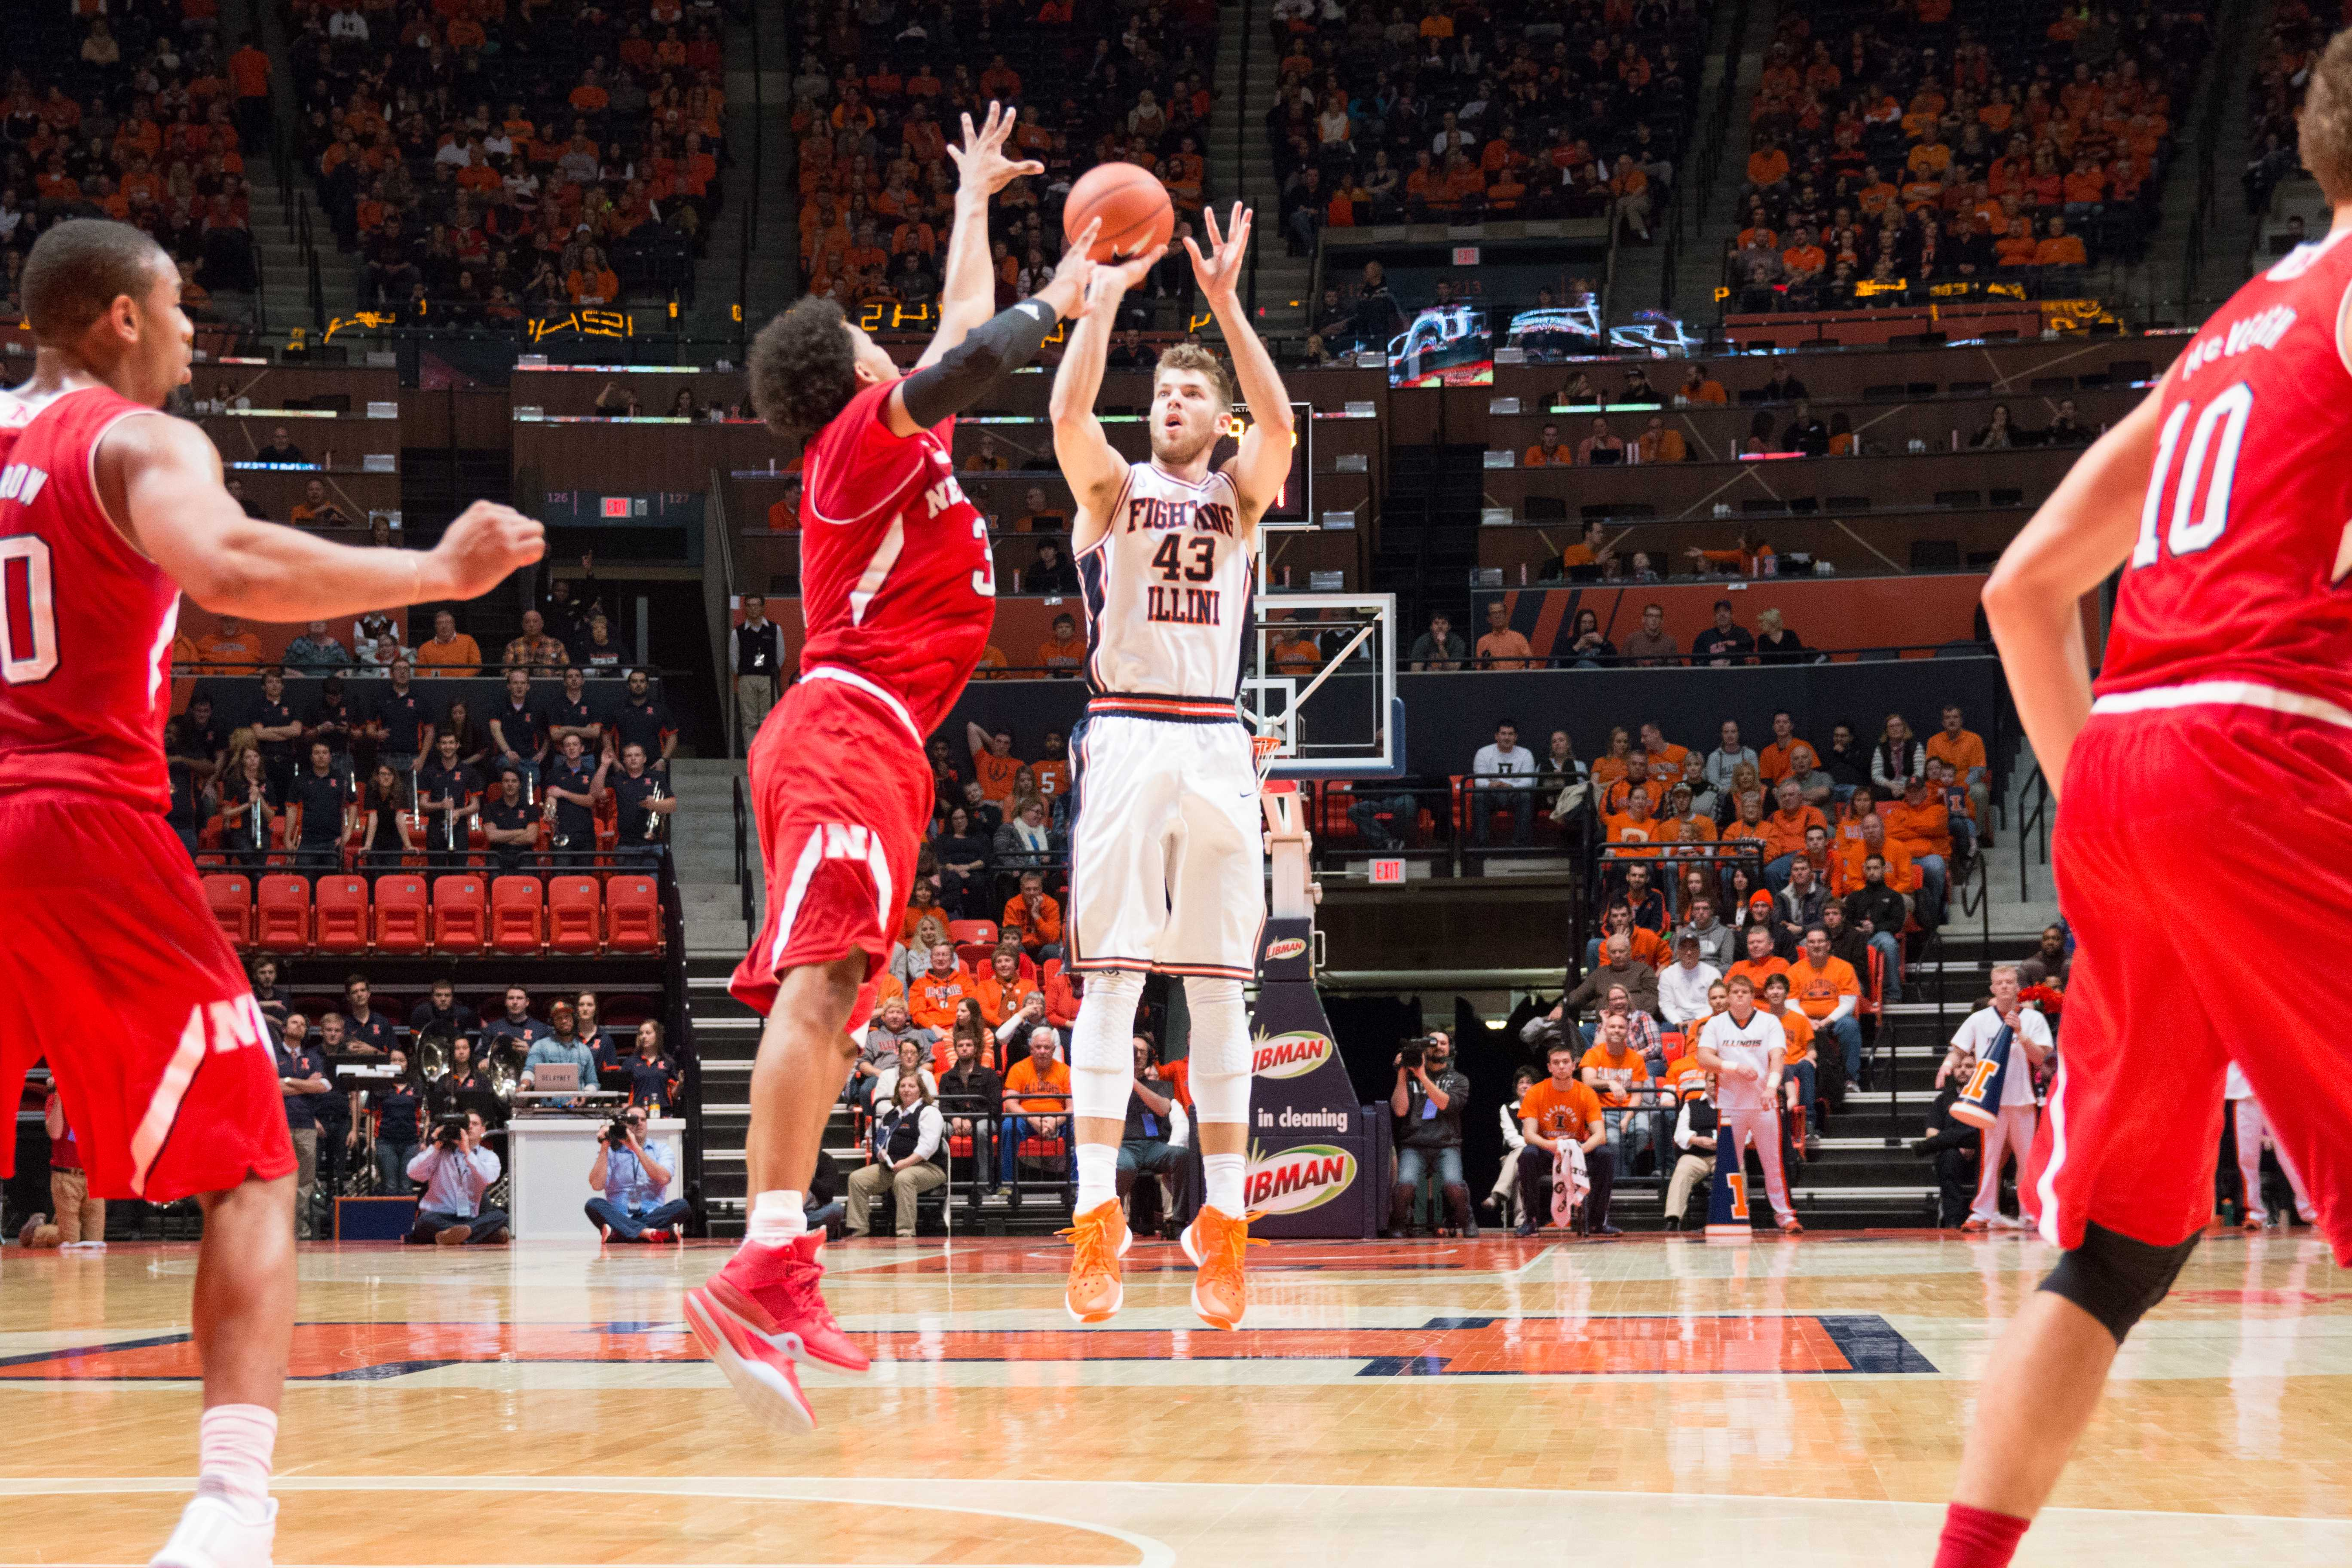 Illinois' Michael Finke shoots a 3-pointer over Nebraska's Shavon Shields during the Illini's 78-67 loss to the Huskers at State Farm Center on Saturday.